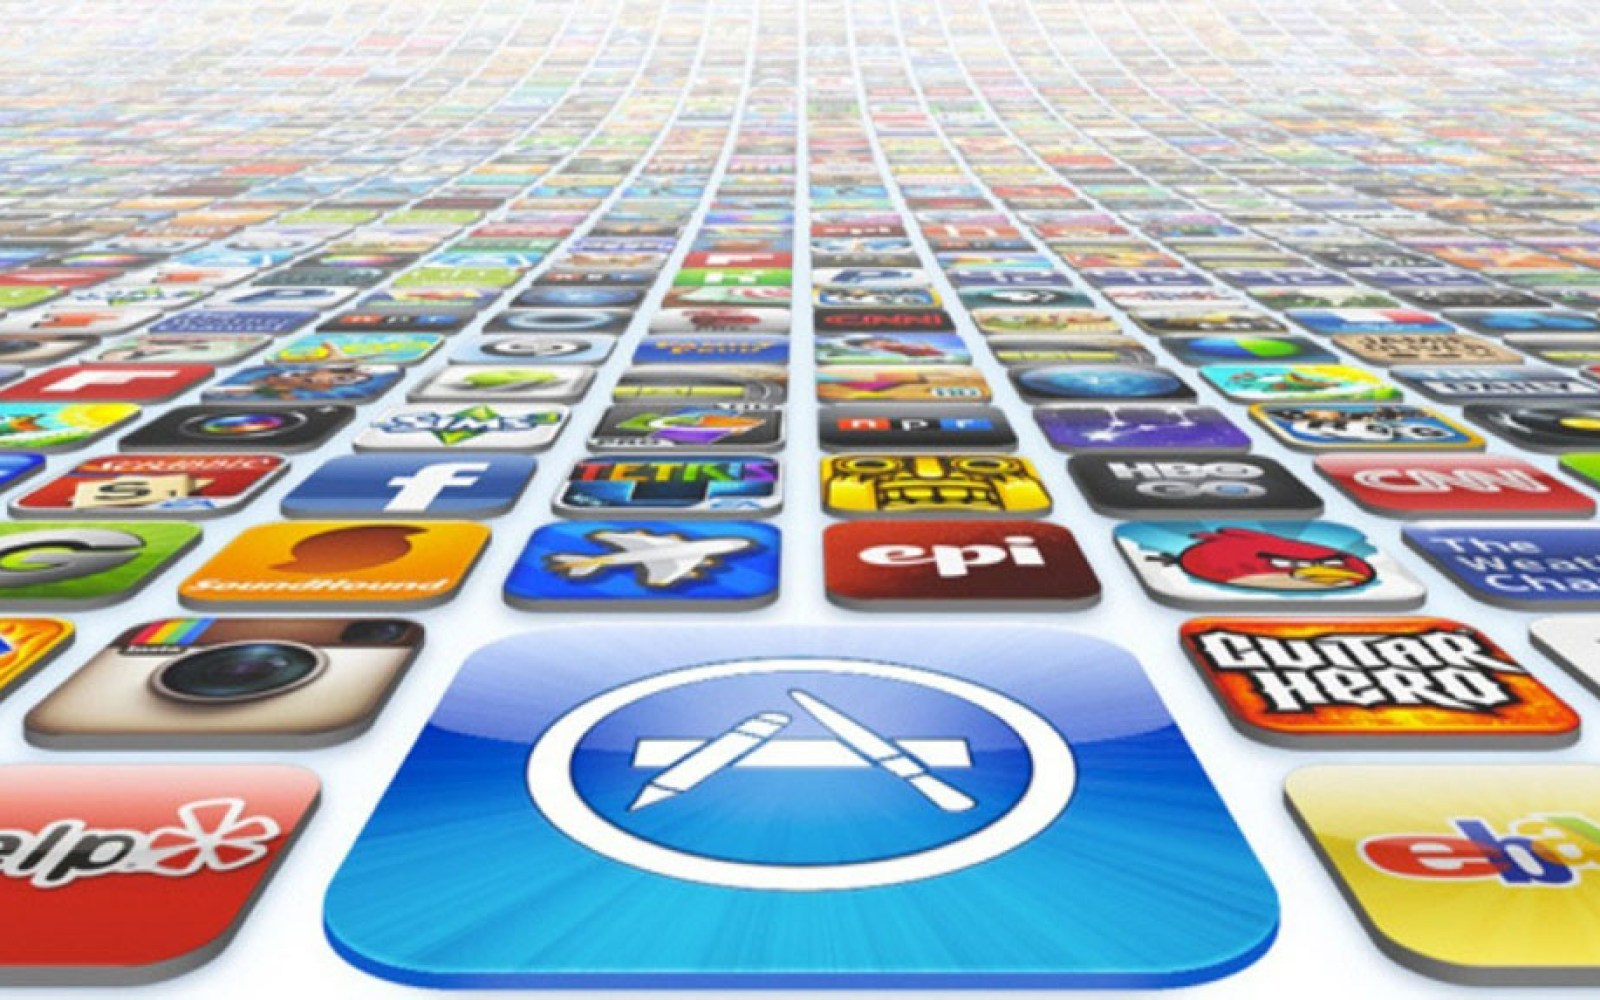 Android won the download race last year, but iOS made the money, app analytics show